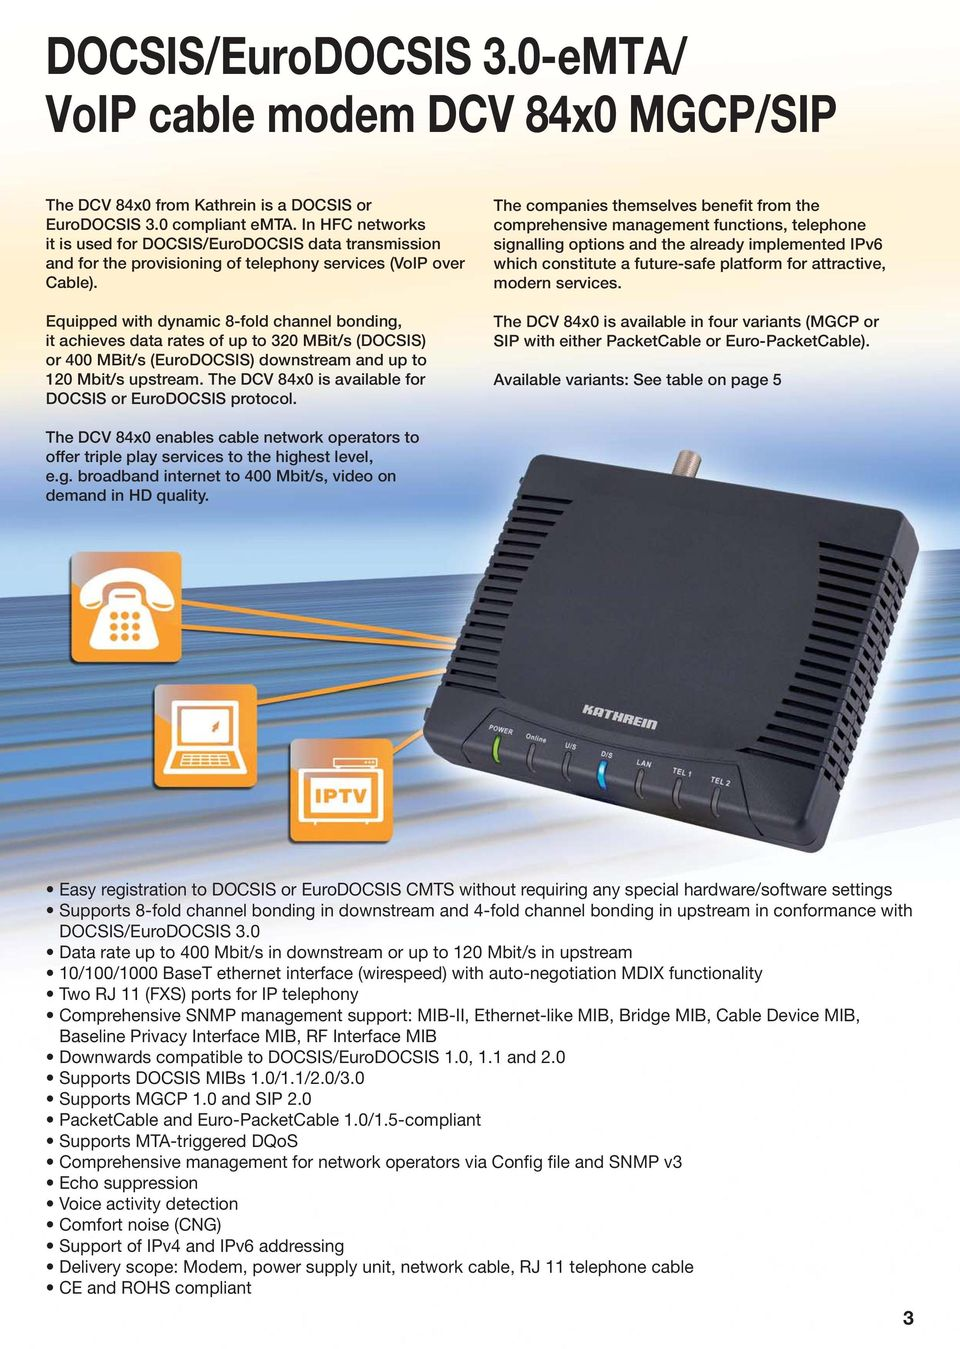 Equipped with dynamic 8-fold channel bonding, it achieves data rates of up to 320 MBit/s (DOCSIS) or 400 MBit/s (EuroDOCSIS) downstream and up to 120 Mbit/s upstream.